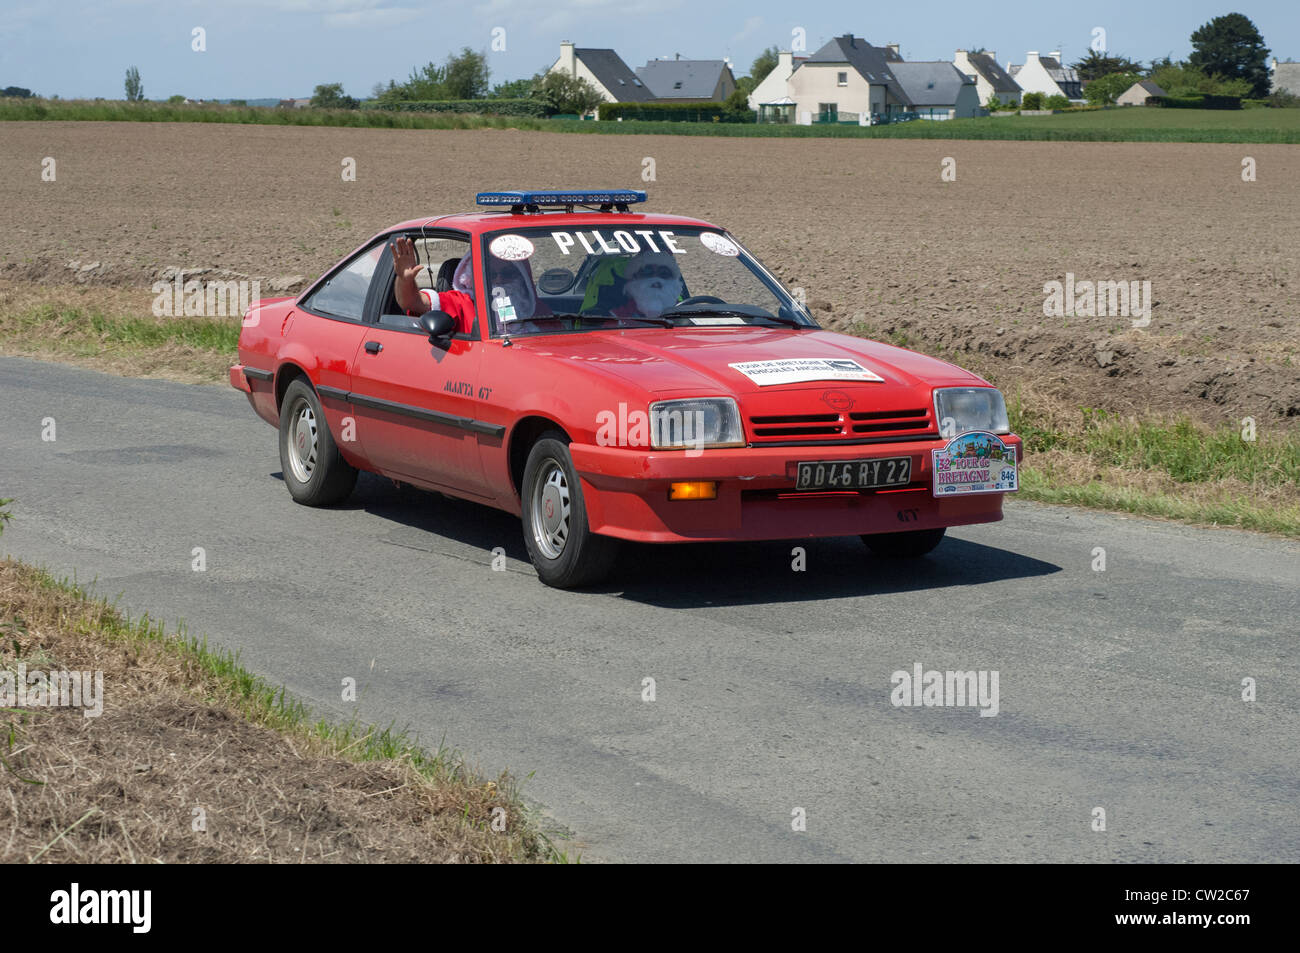 Tour Of 1981 Stock Photos Images Alamy Motorheads Performance Classic Car News Wiring Nightmares Can Be Opel Manta Gt In The De Bretagne Near Pordic Cotes D